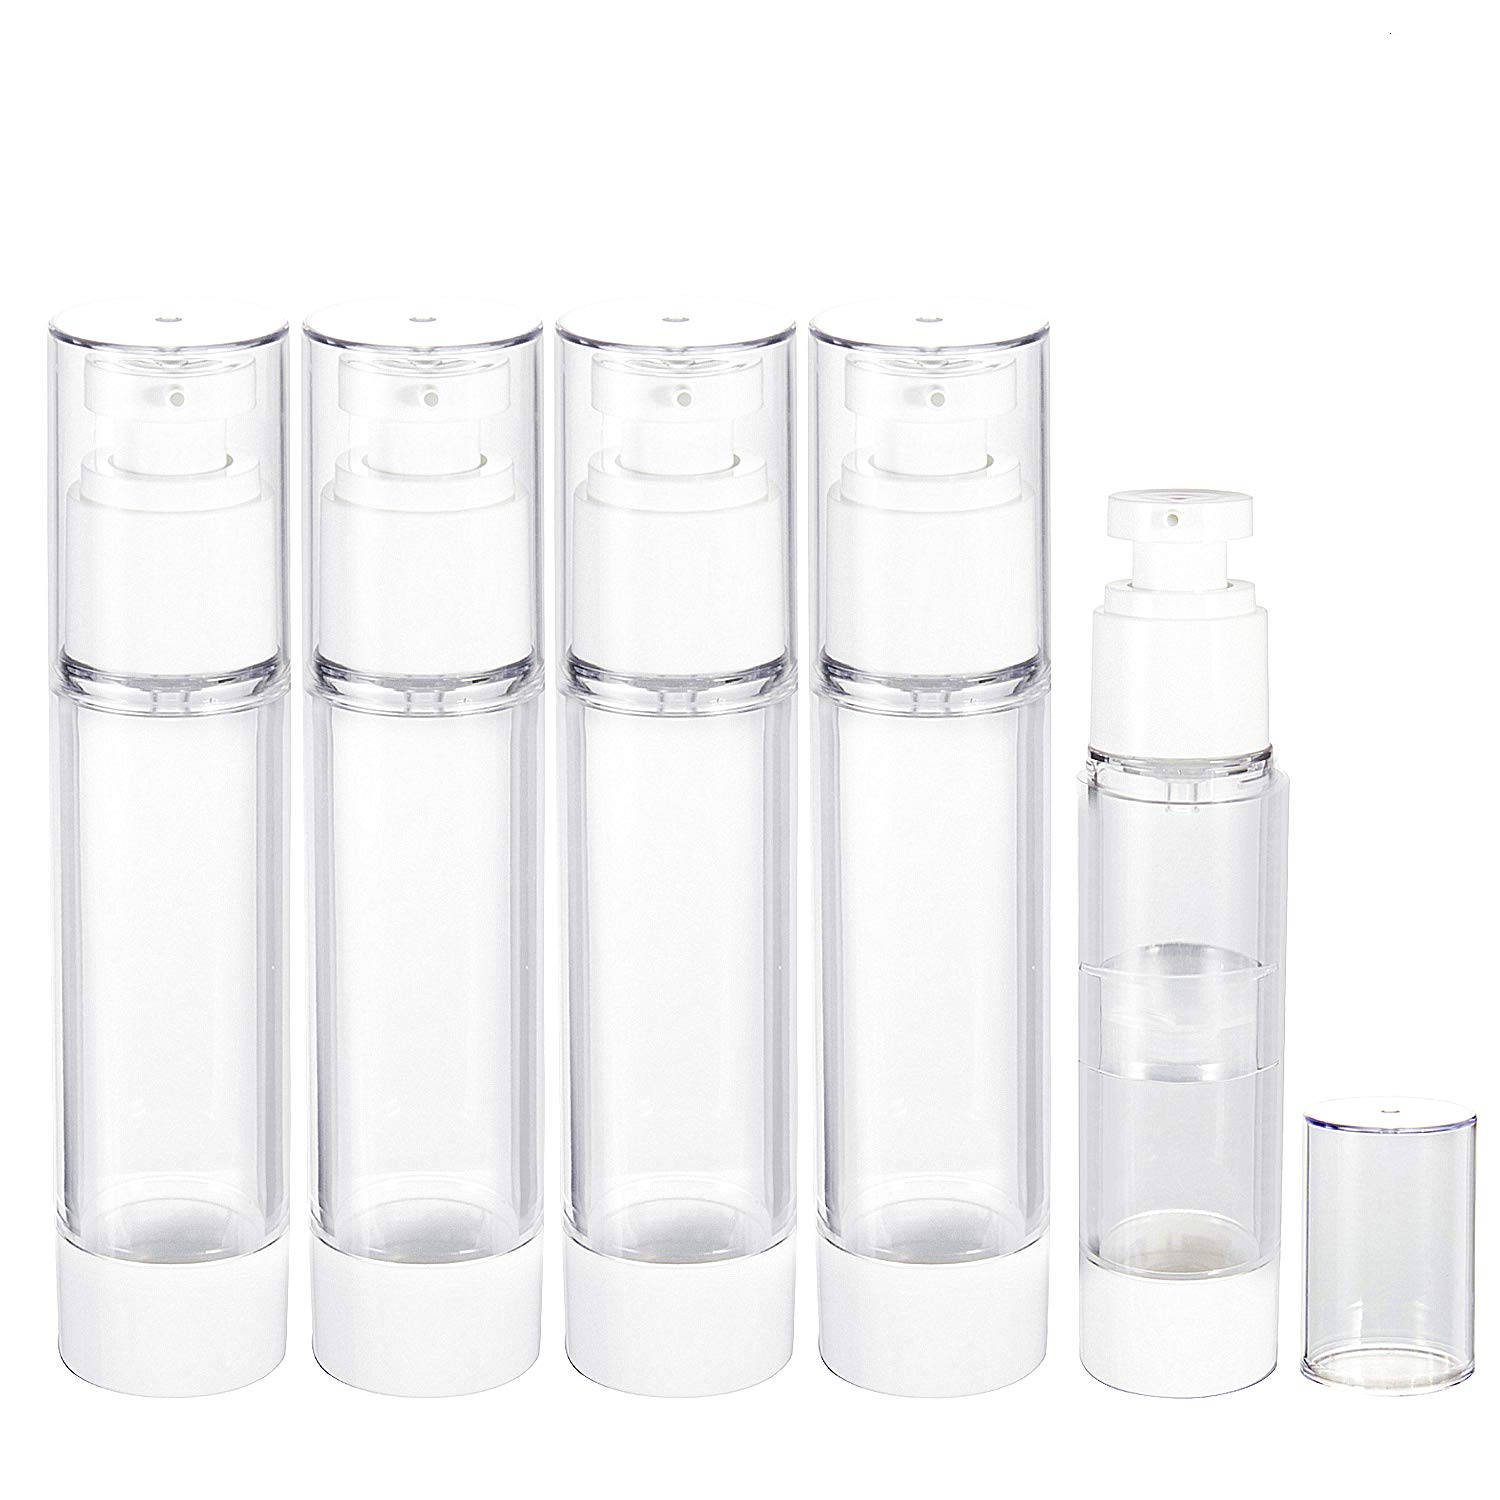 Empty Pump Bottles, RUCKAE Airless Pump Bottle Dispenser 4pcs 3.4oz/100ml + 1pc 1.7oz/50ml, Vacuum Travel Bottles Clear Refillable Container for Lotion, Shampoo, Liquid Soap, Essential Oils and More